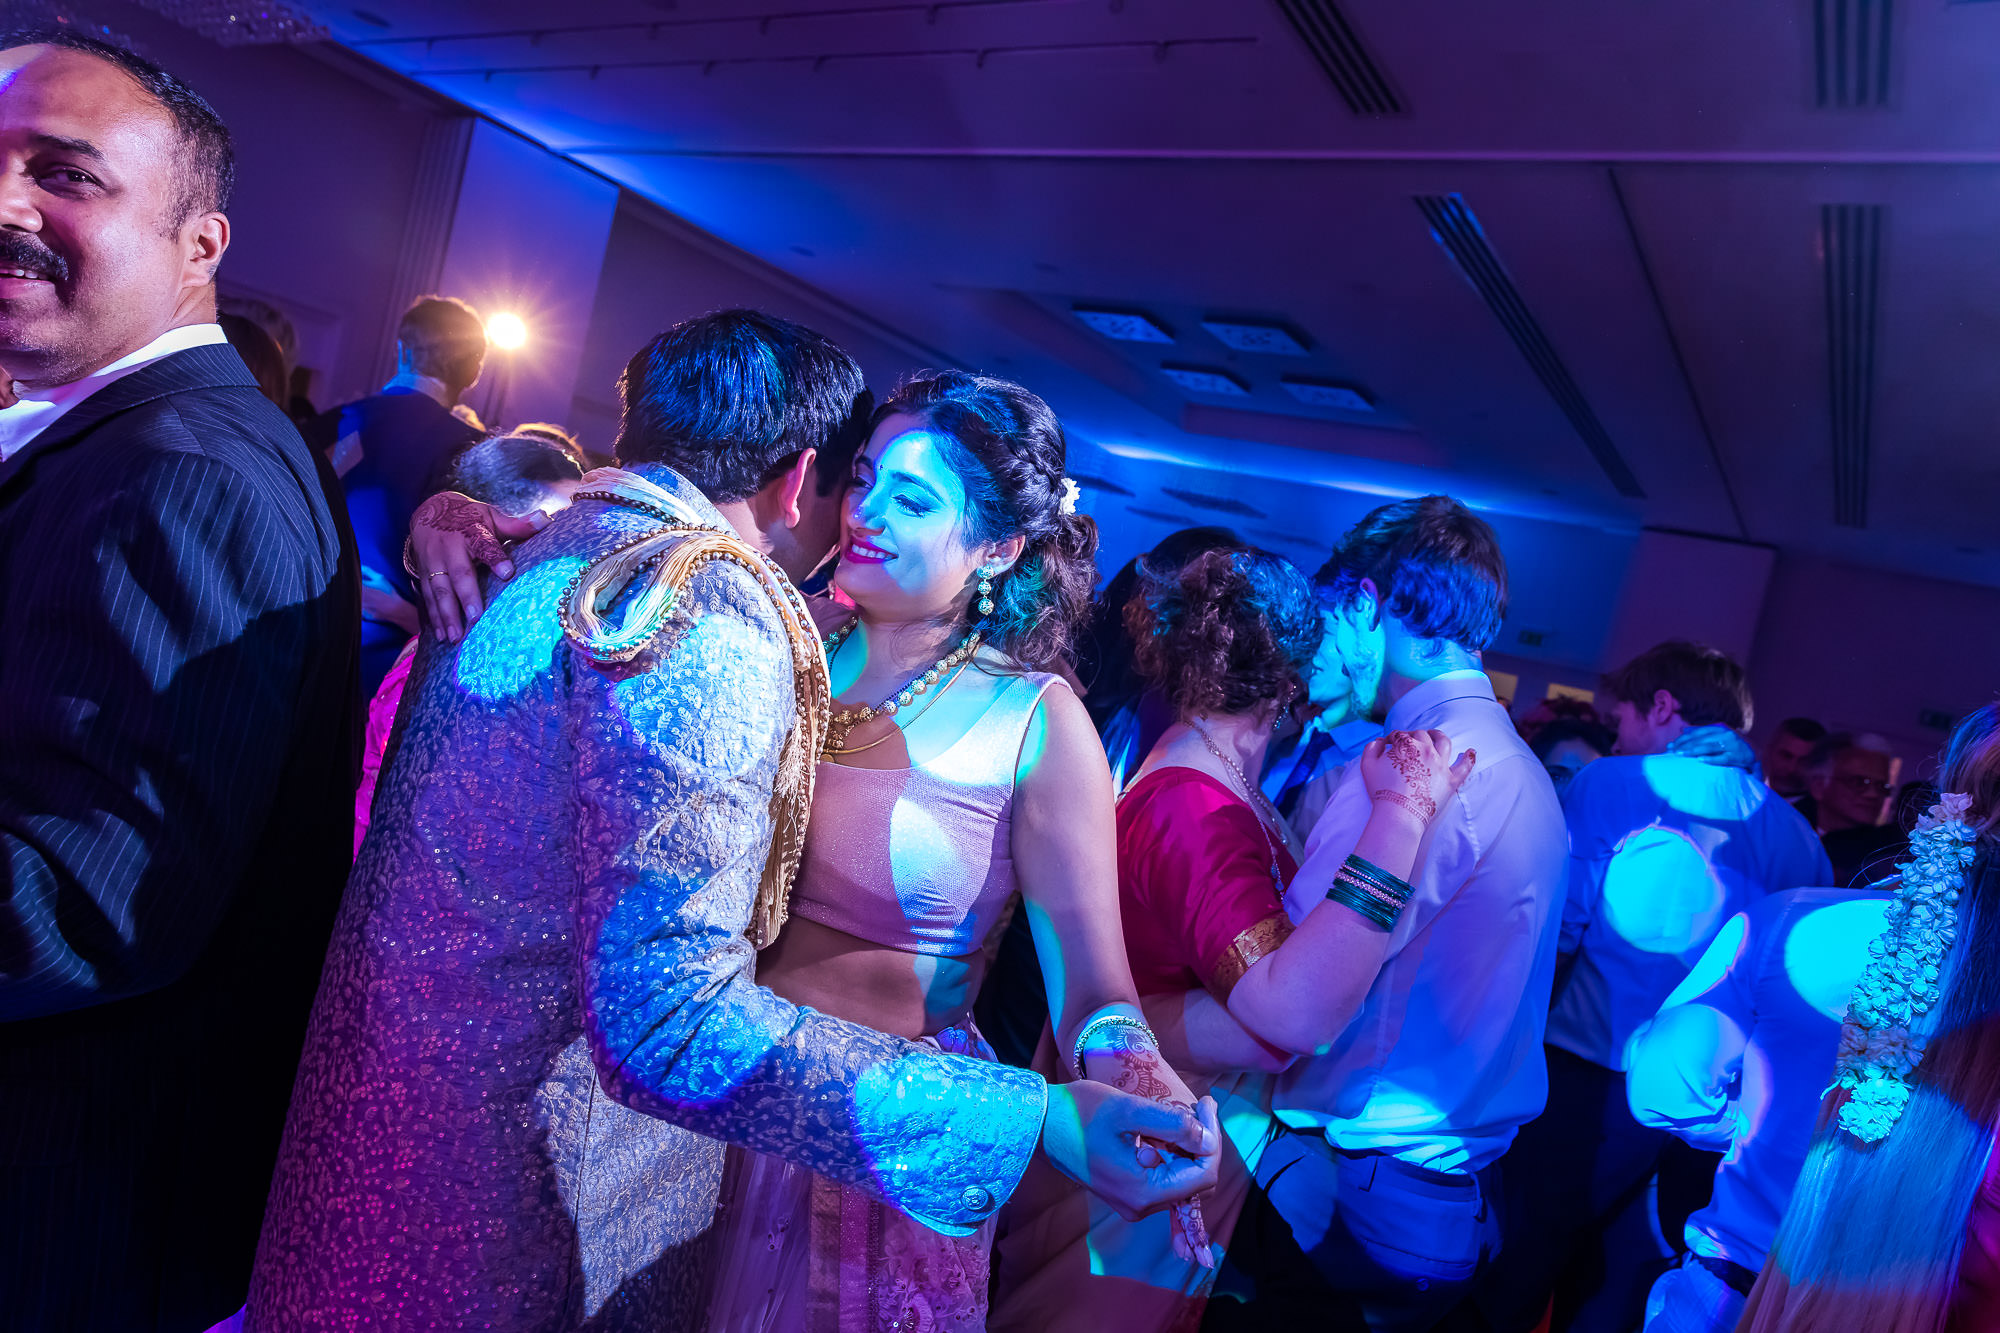 asian-wedding-hindu-tamil-photographer-heythorpe-oxford-0111.jpg